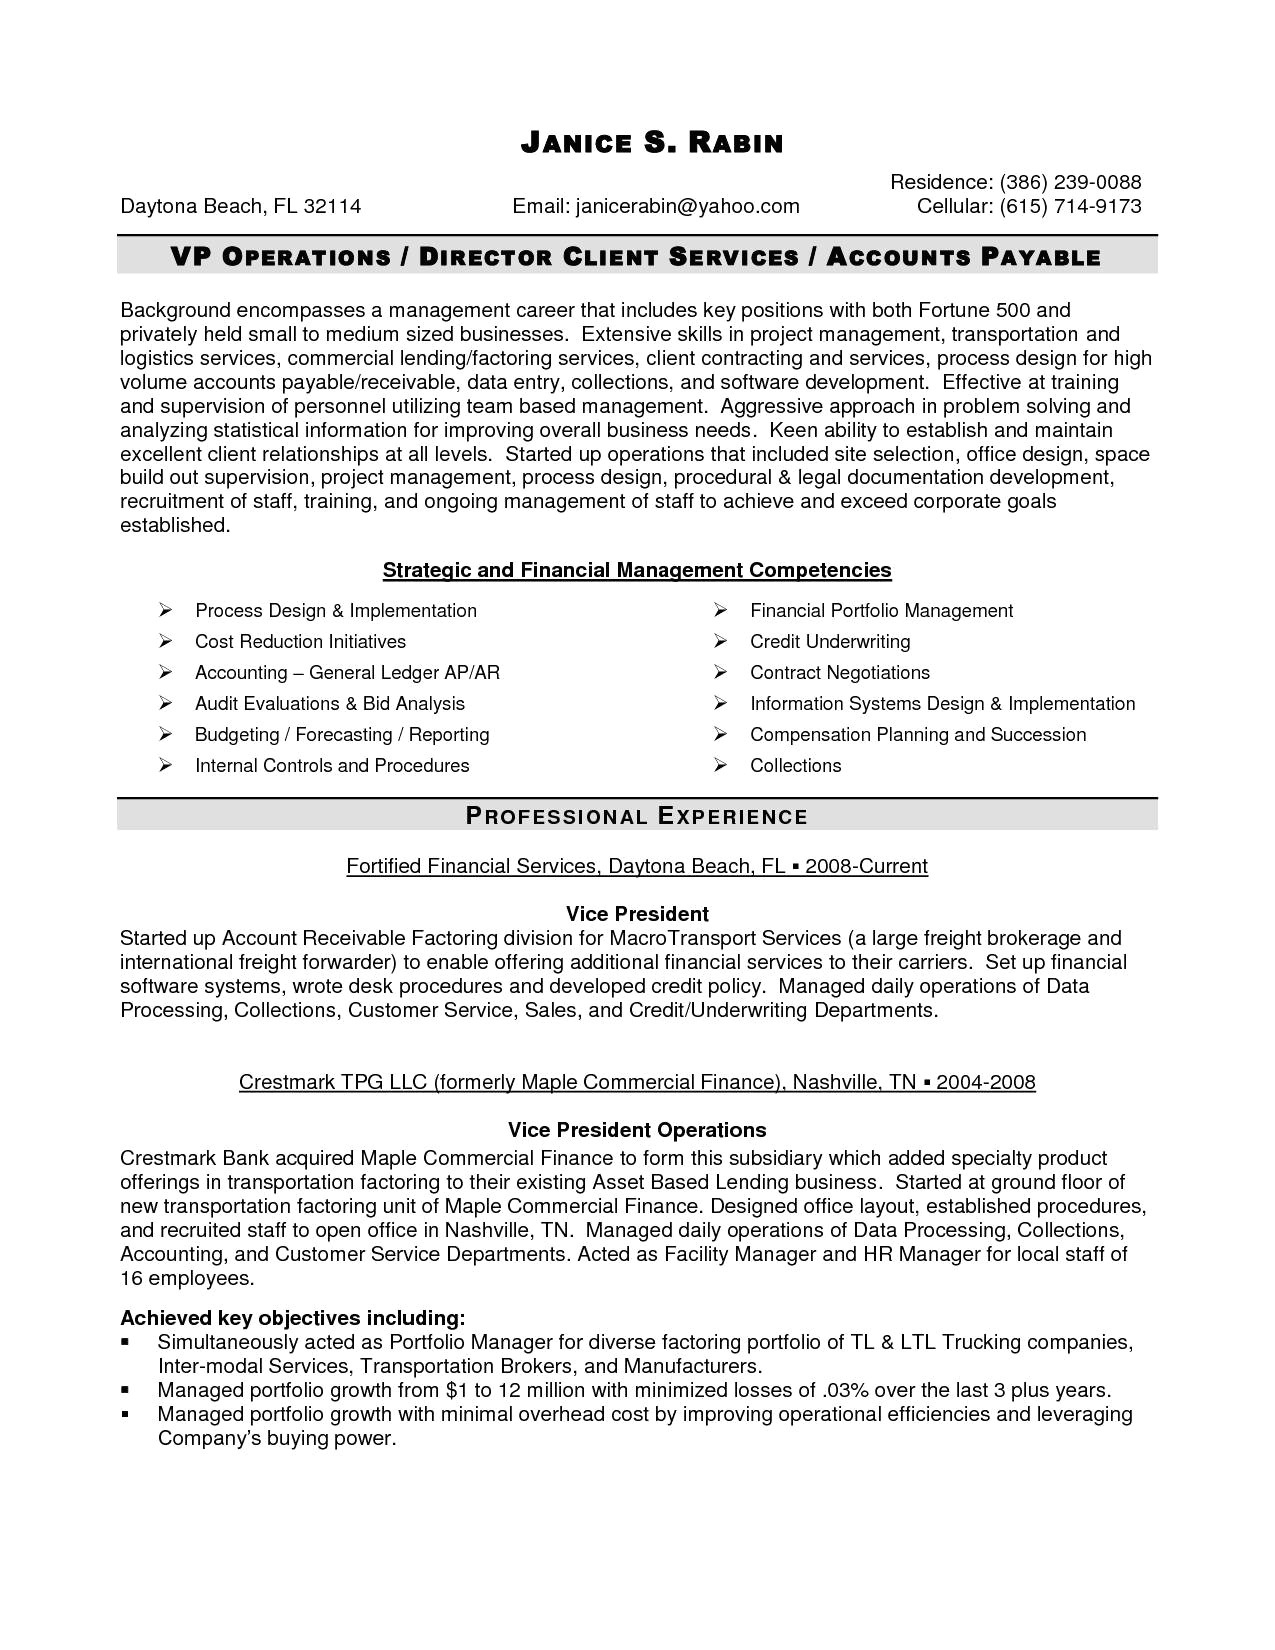 financial services resume template Collection-Reseume Templates Fresh Resume Templates with formatted Resume 0d 11-k